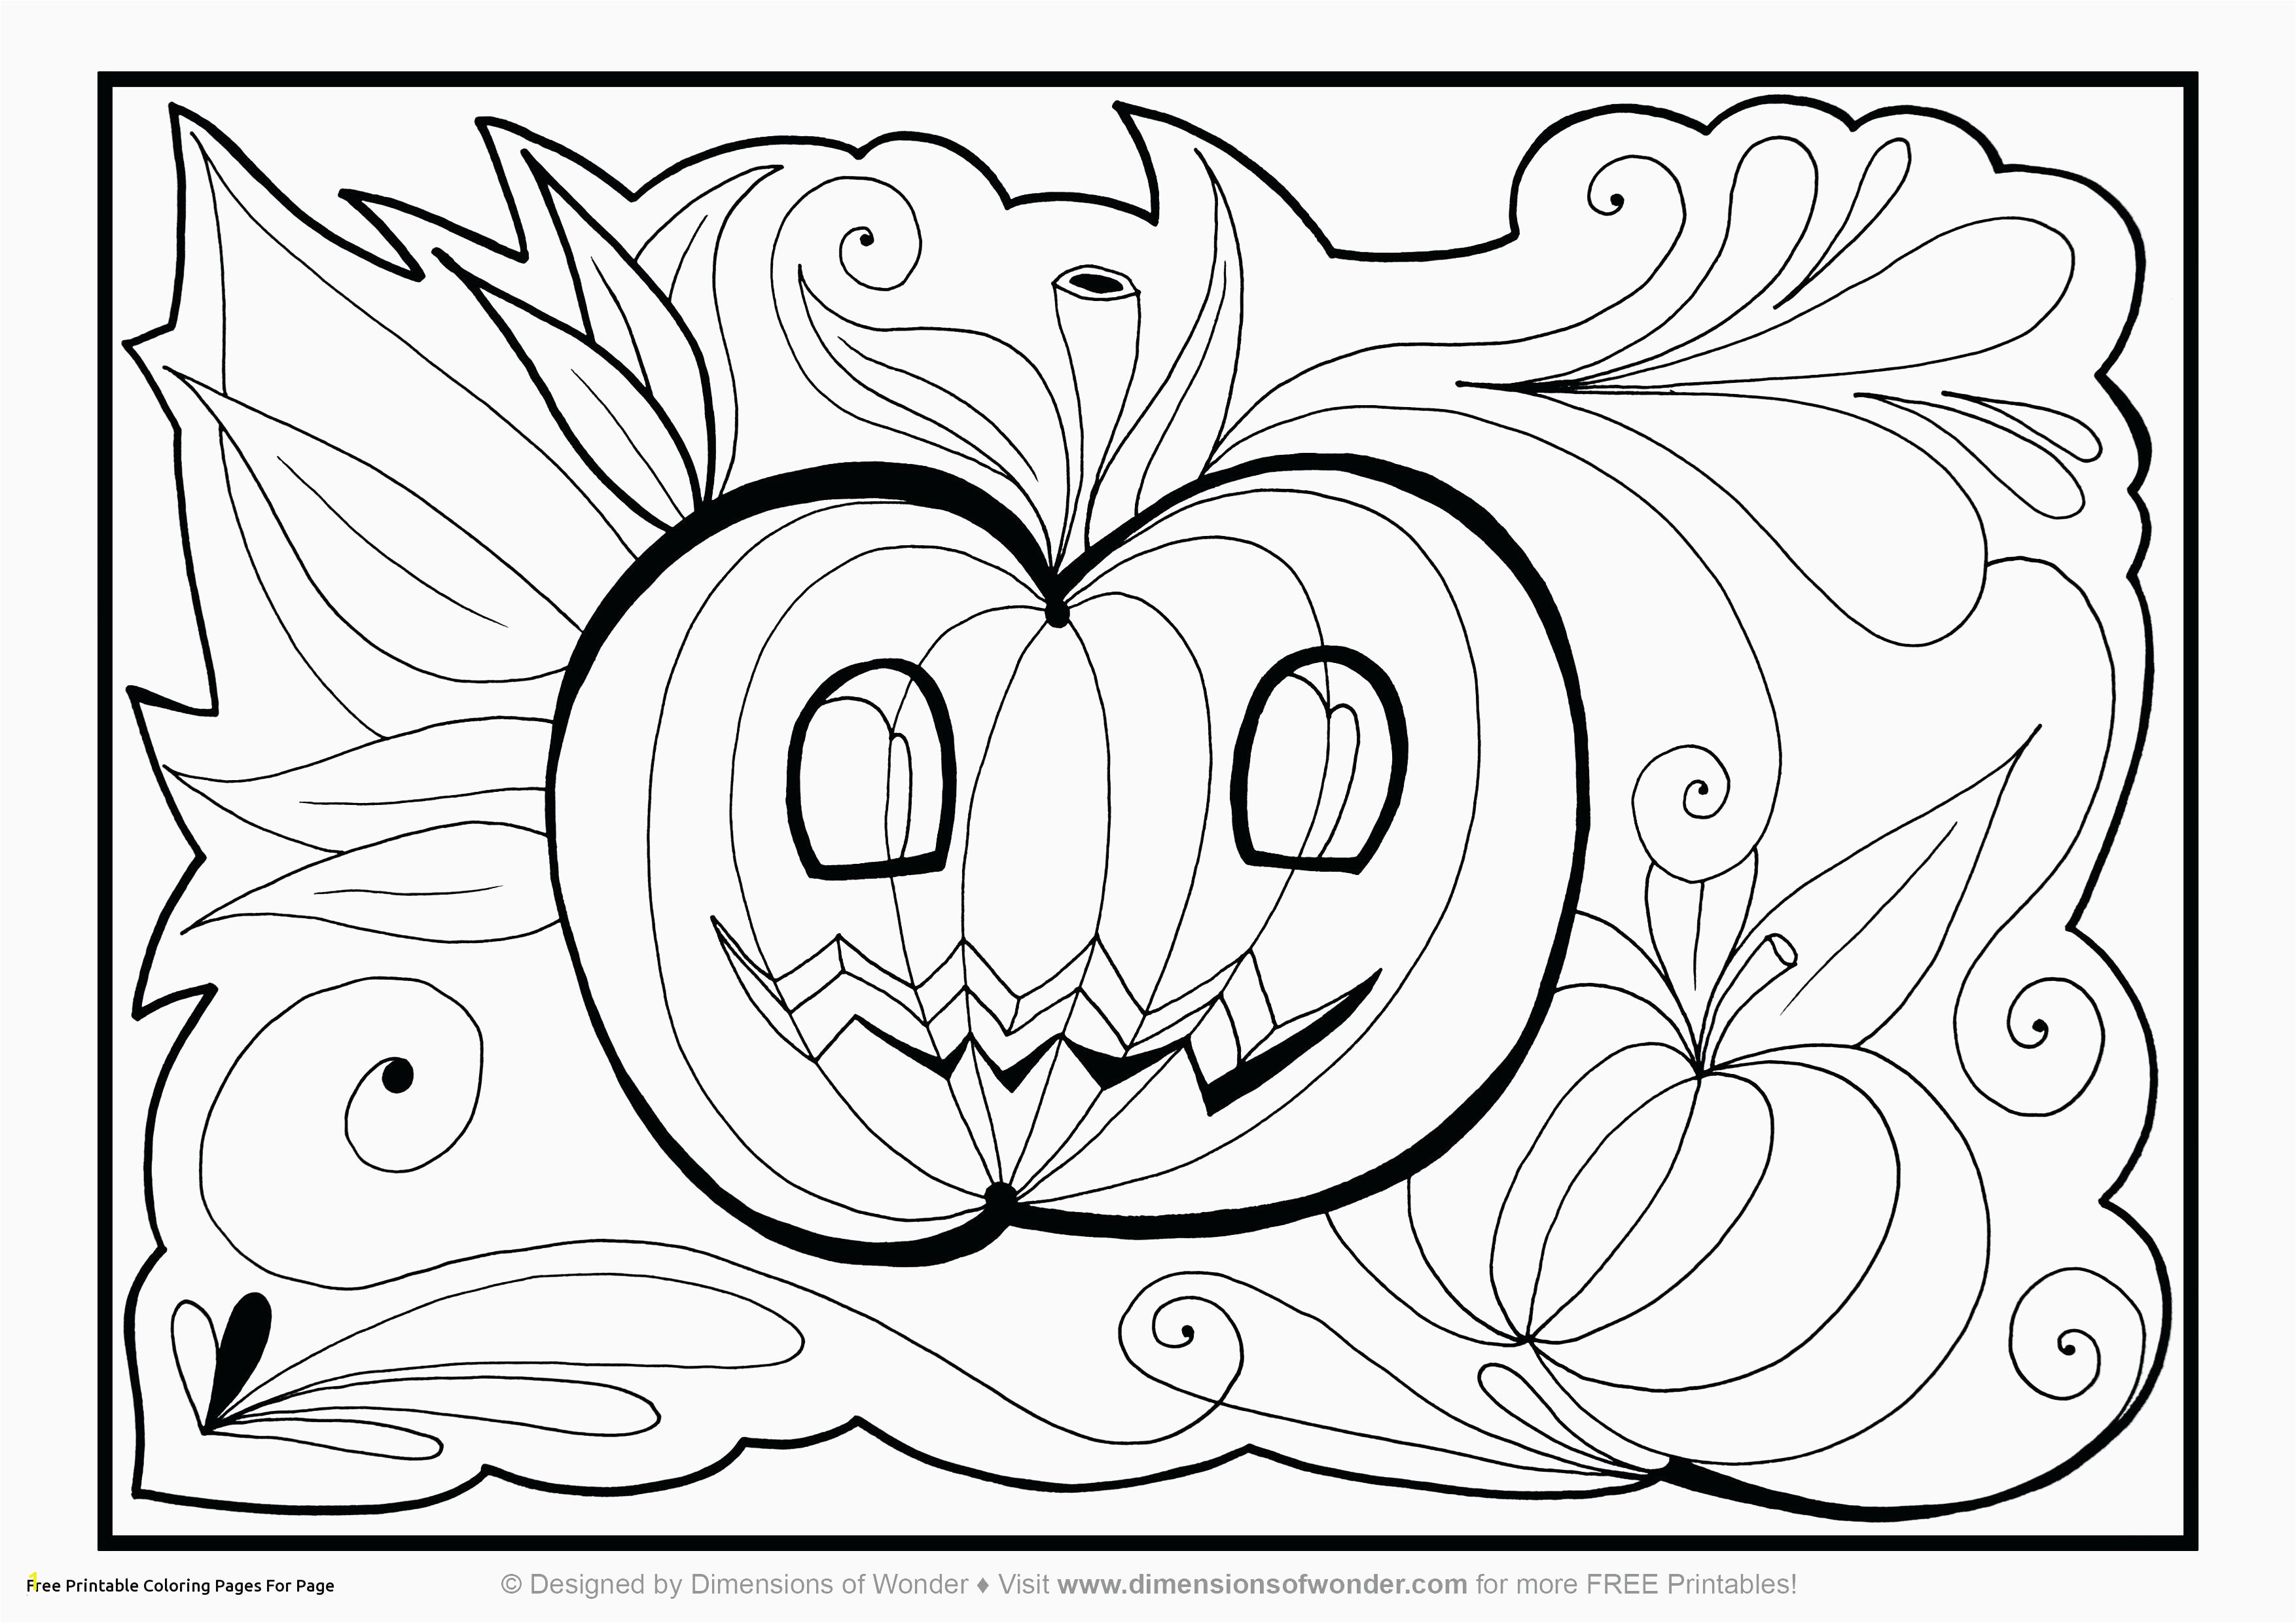 Disney Jr Color Pages Halloween Disney Coloring Pages Popular Printable Home Coloring